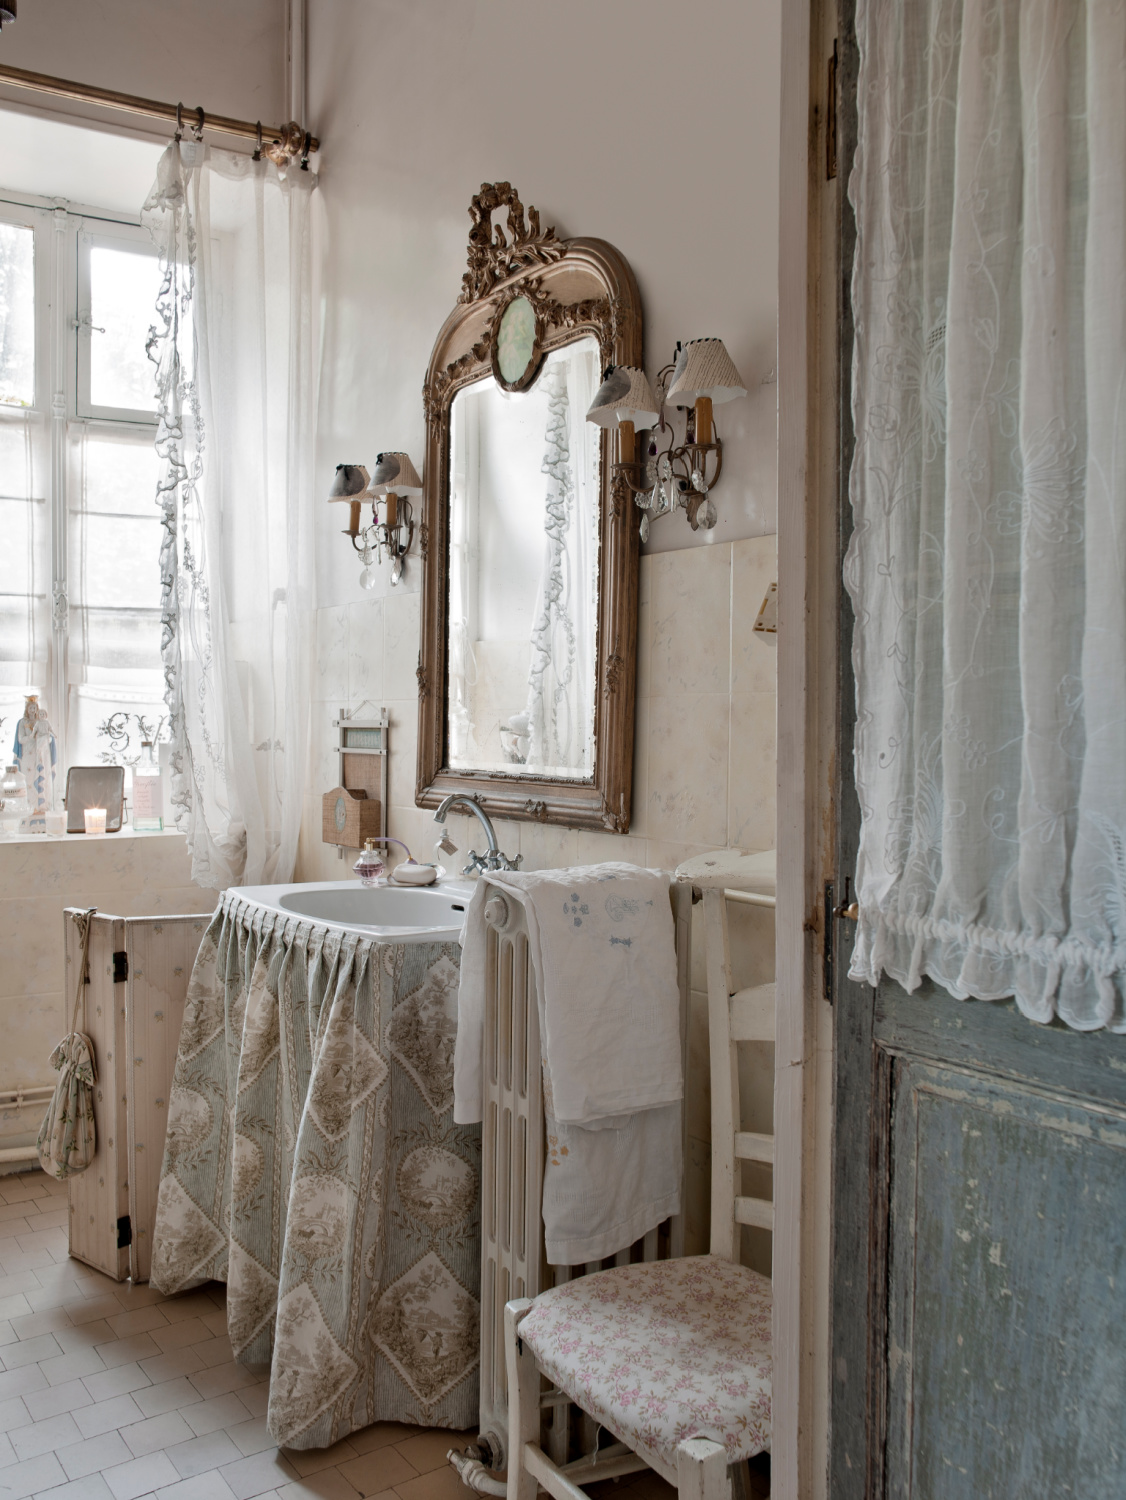 Elegant and traditional bathroom in Provence with ornate mirror, skirted sink, and a pale palette. Featured in Shauna Varvel's PROVENCE STYLE. #interiordesign #frenchcountry #oldworldstyle